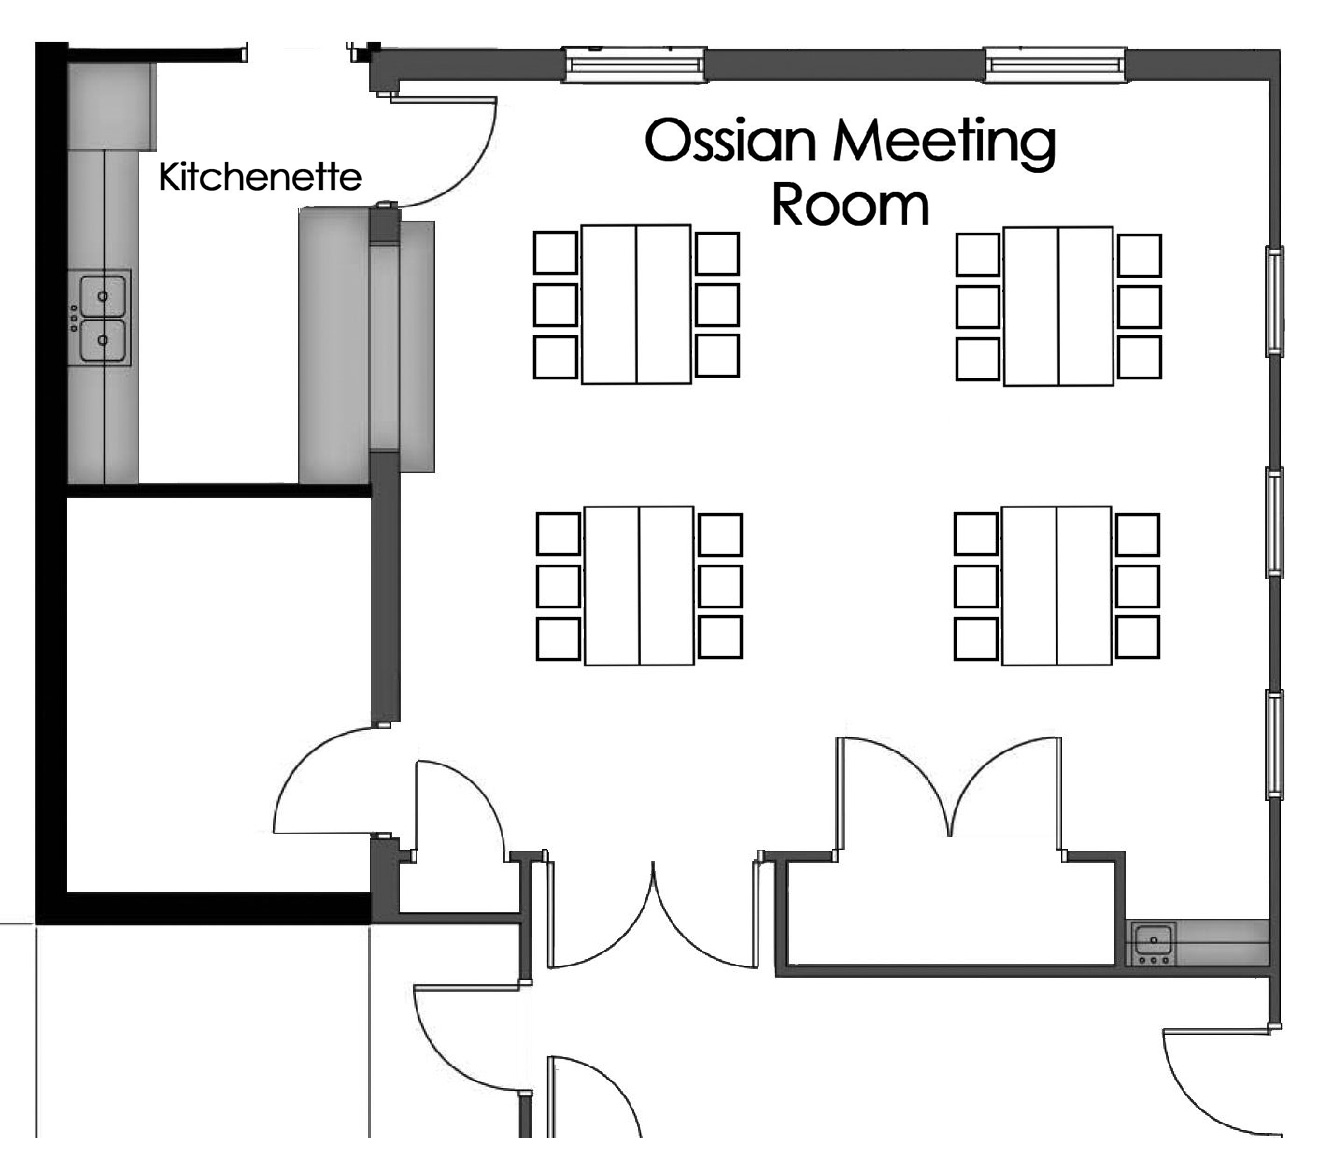 ossian meeting rooms